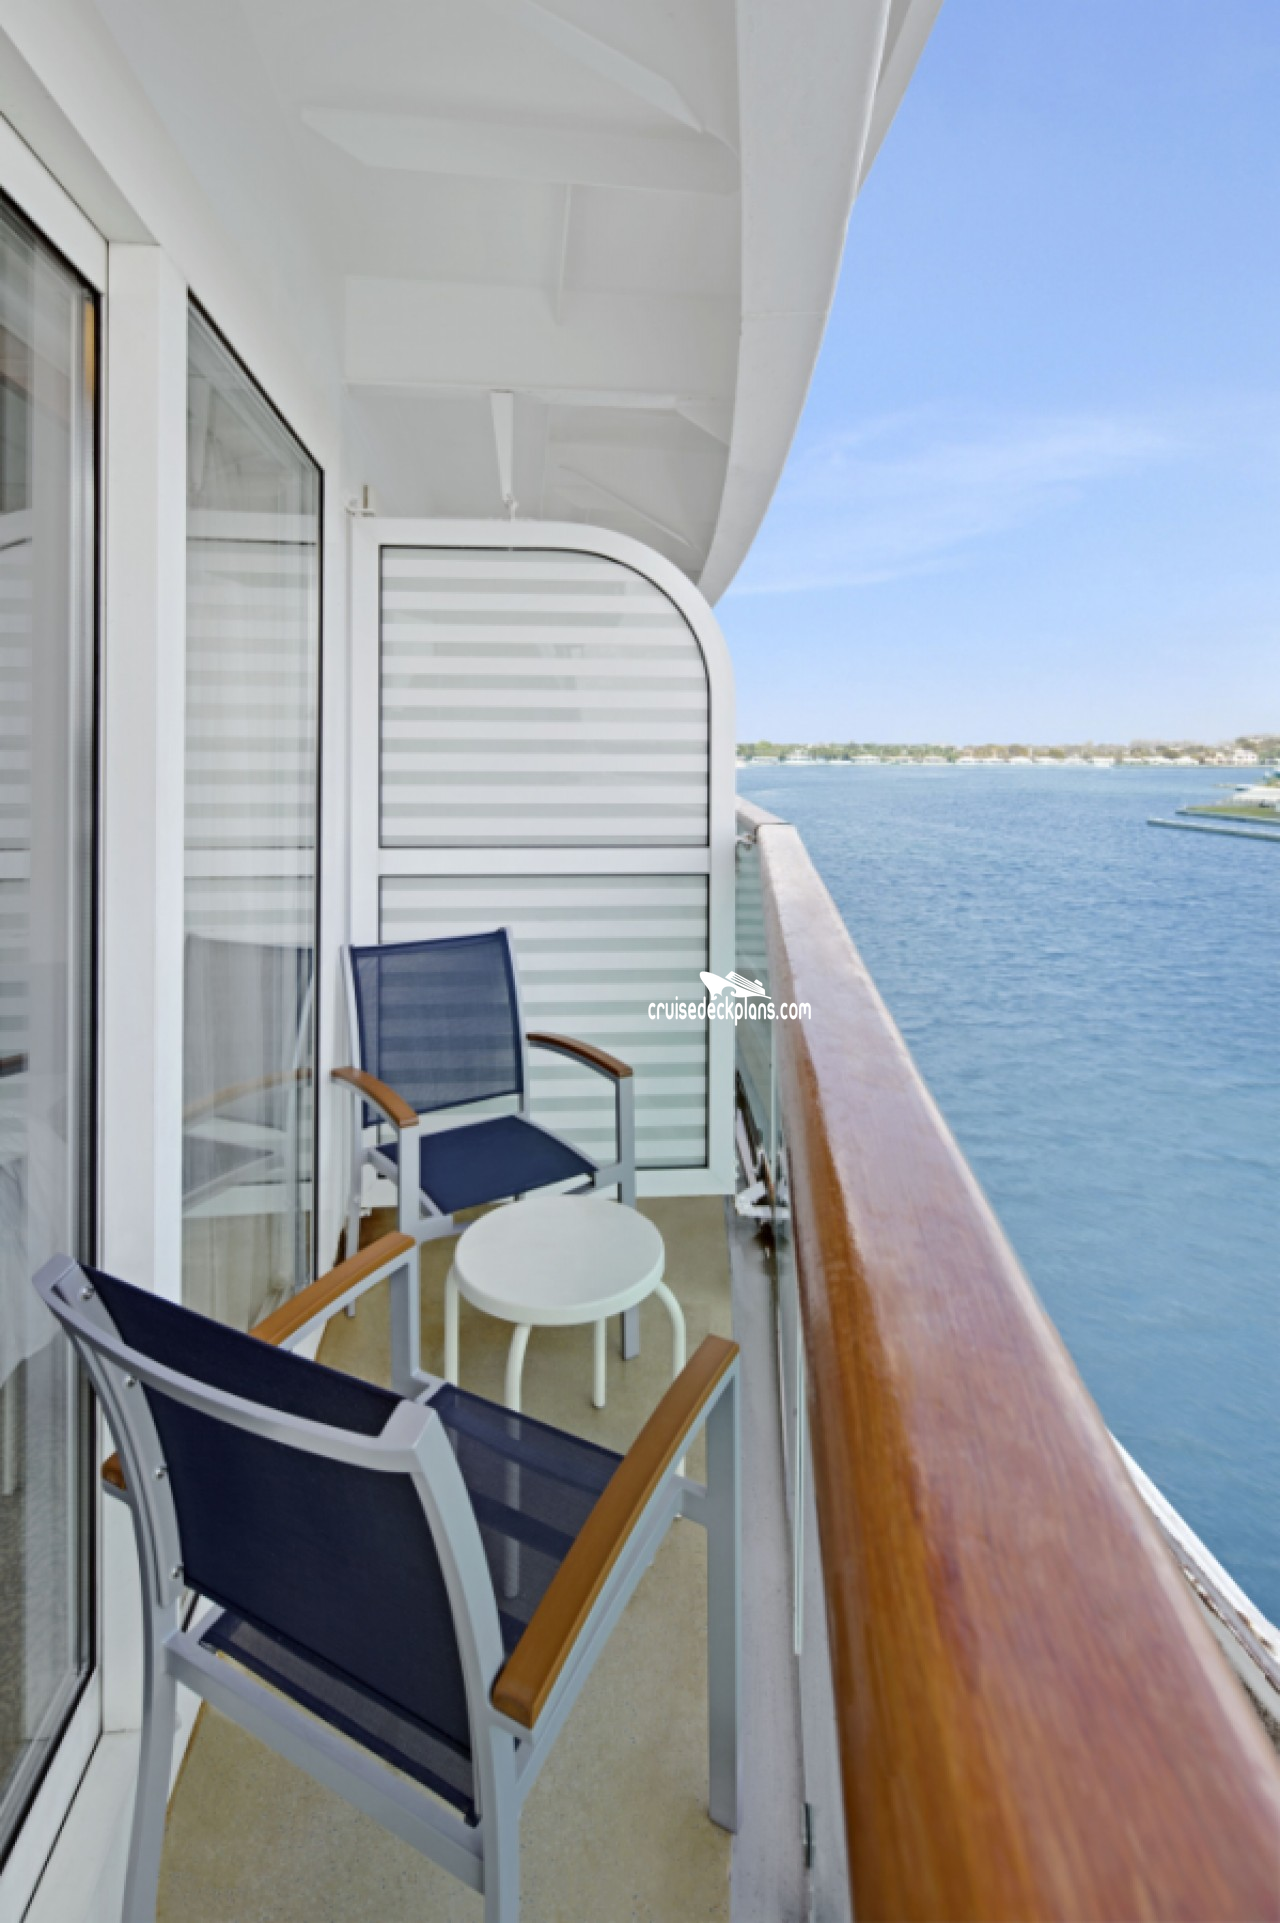 Cabin 9074 with balcony liberty of seas royal caribbean for Balcony meaning